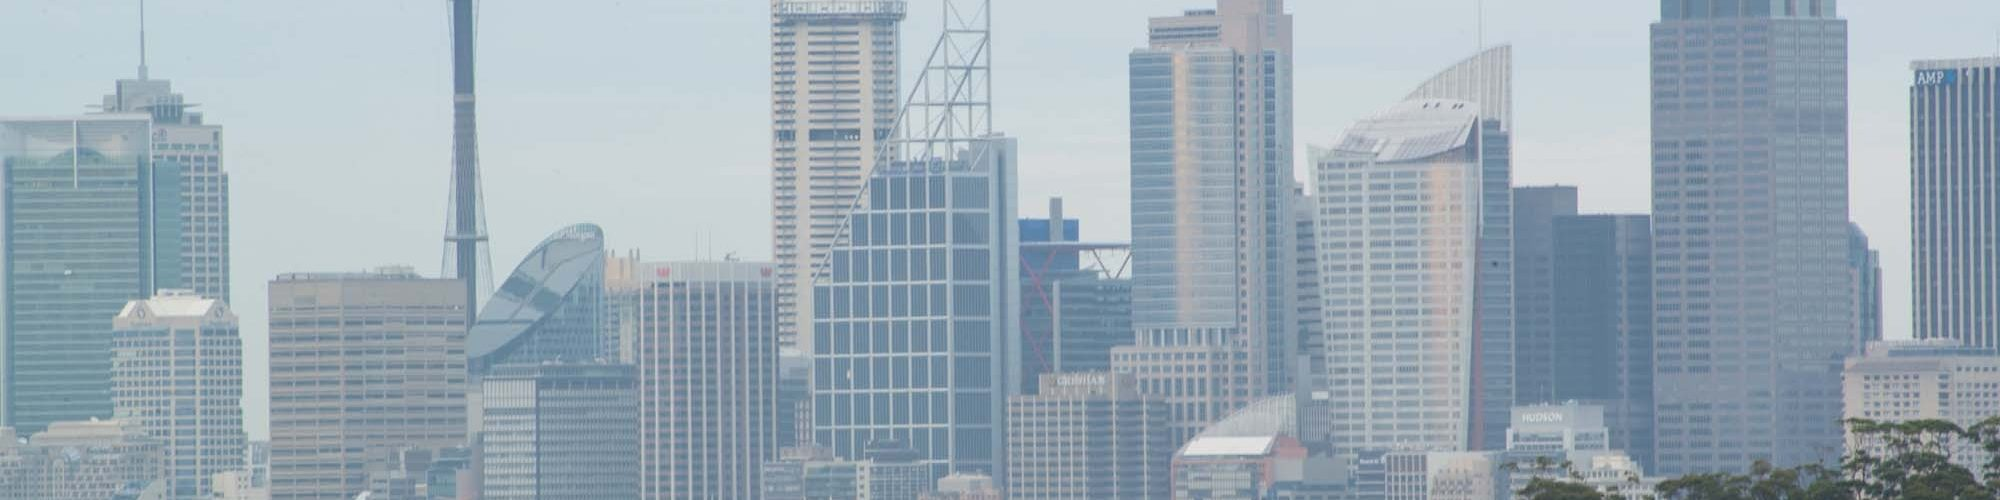 City skyline with skyscrapers and a line of housing in the foreground